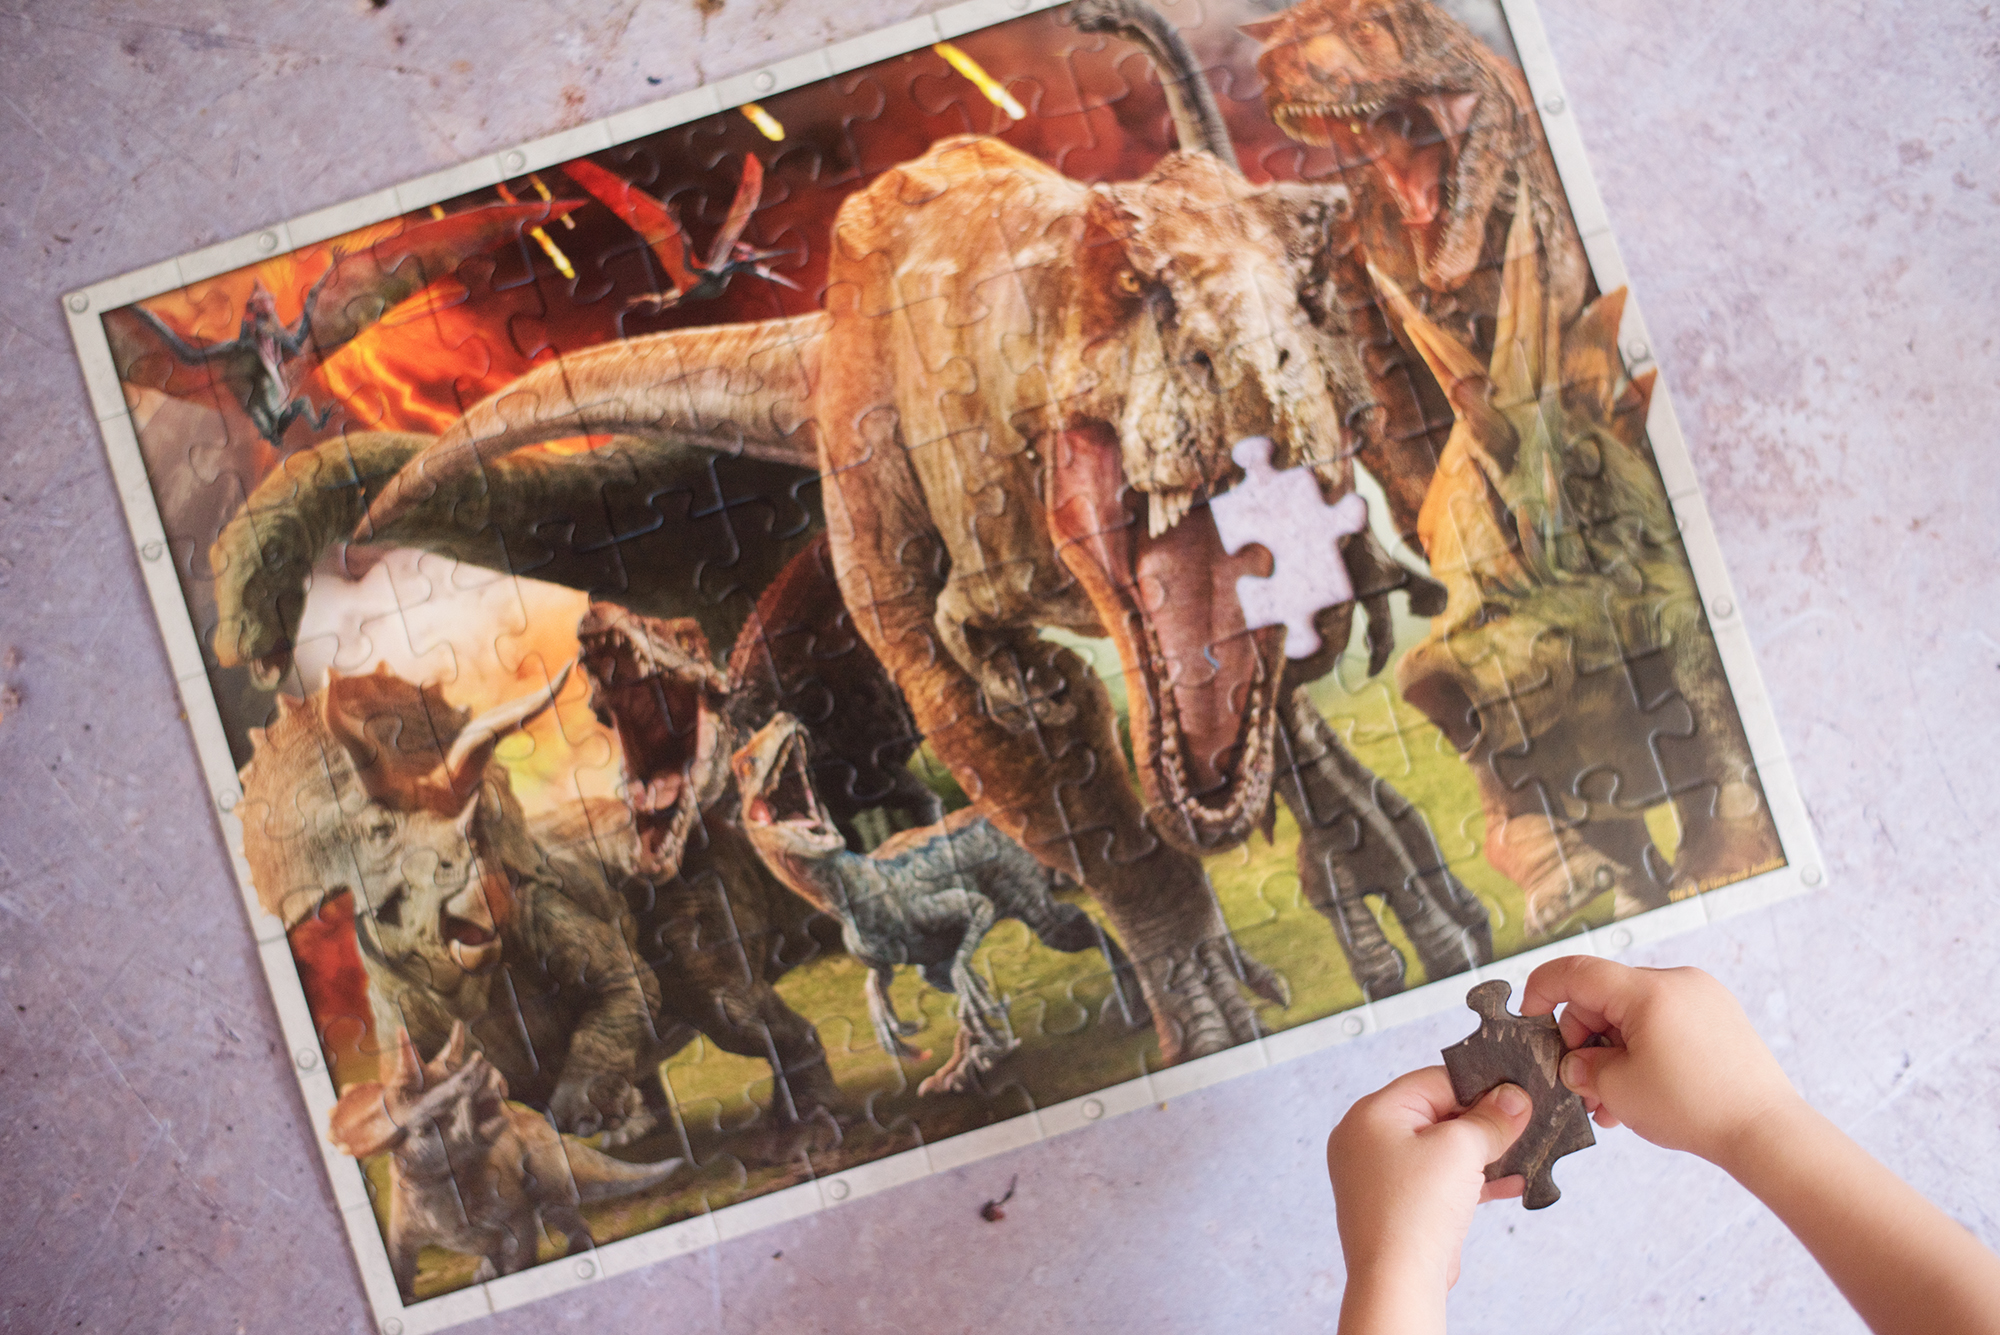 Ravensburger Jurassic World jigsaw